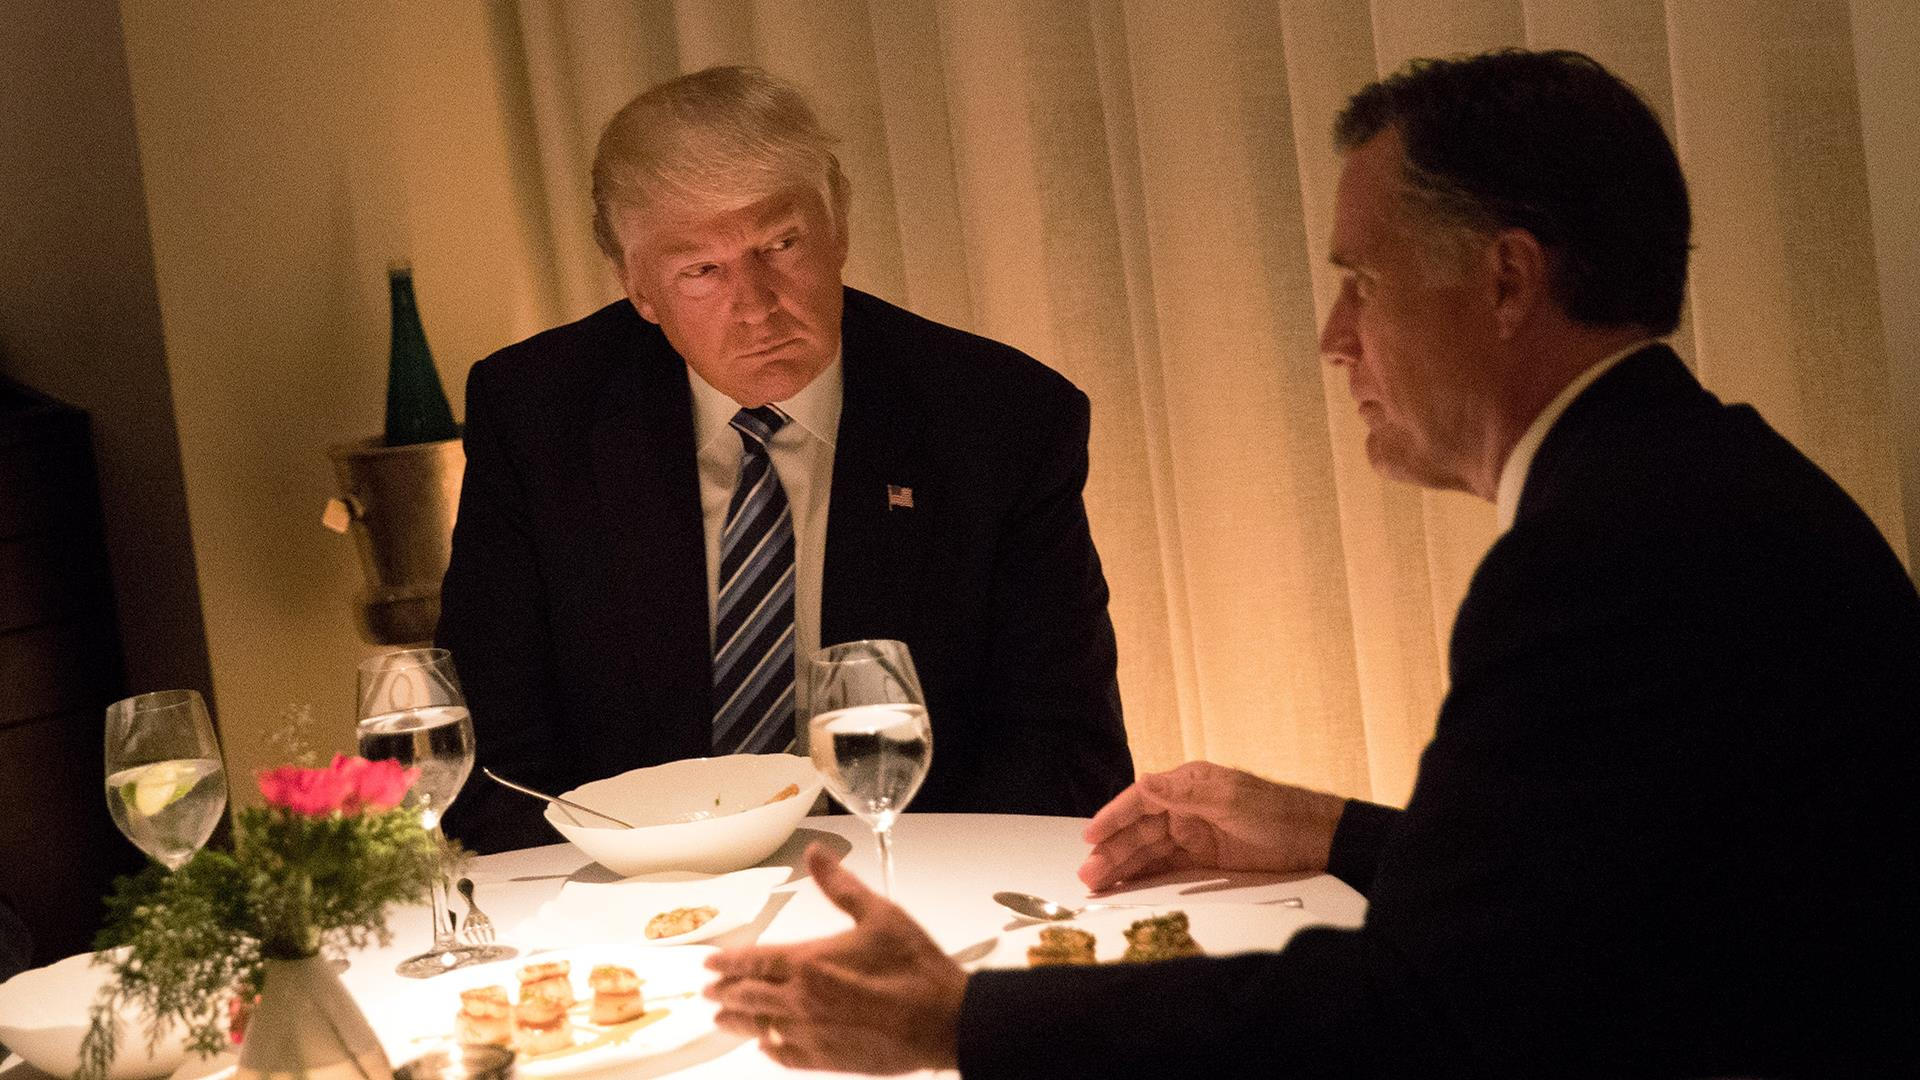 Donald Trump dines with Mitt Romney, makes 3 more cabinet picks ...